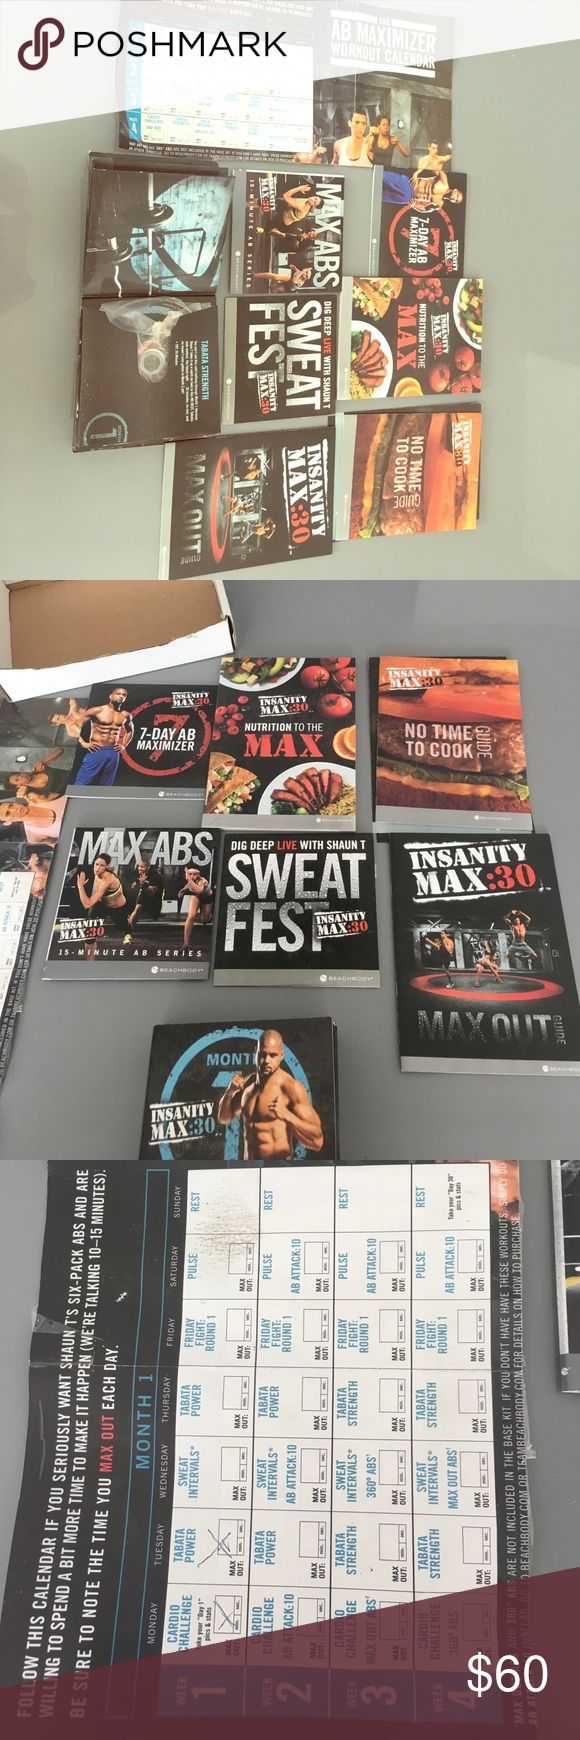 Complete Insanity Workout 💦 Amazing program. Authentic. Amazing results. The calendar is written. Food guide included. Thanks for looking. Feel free to make offers. Free gift with bundle 🎁 Other